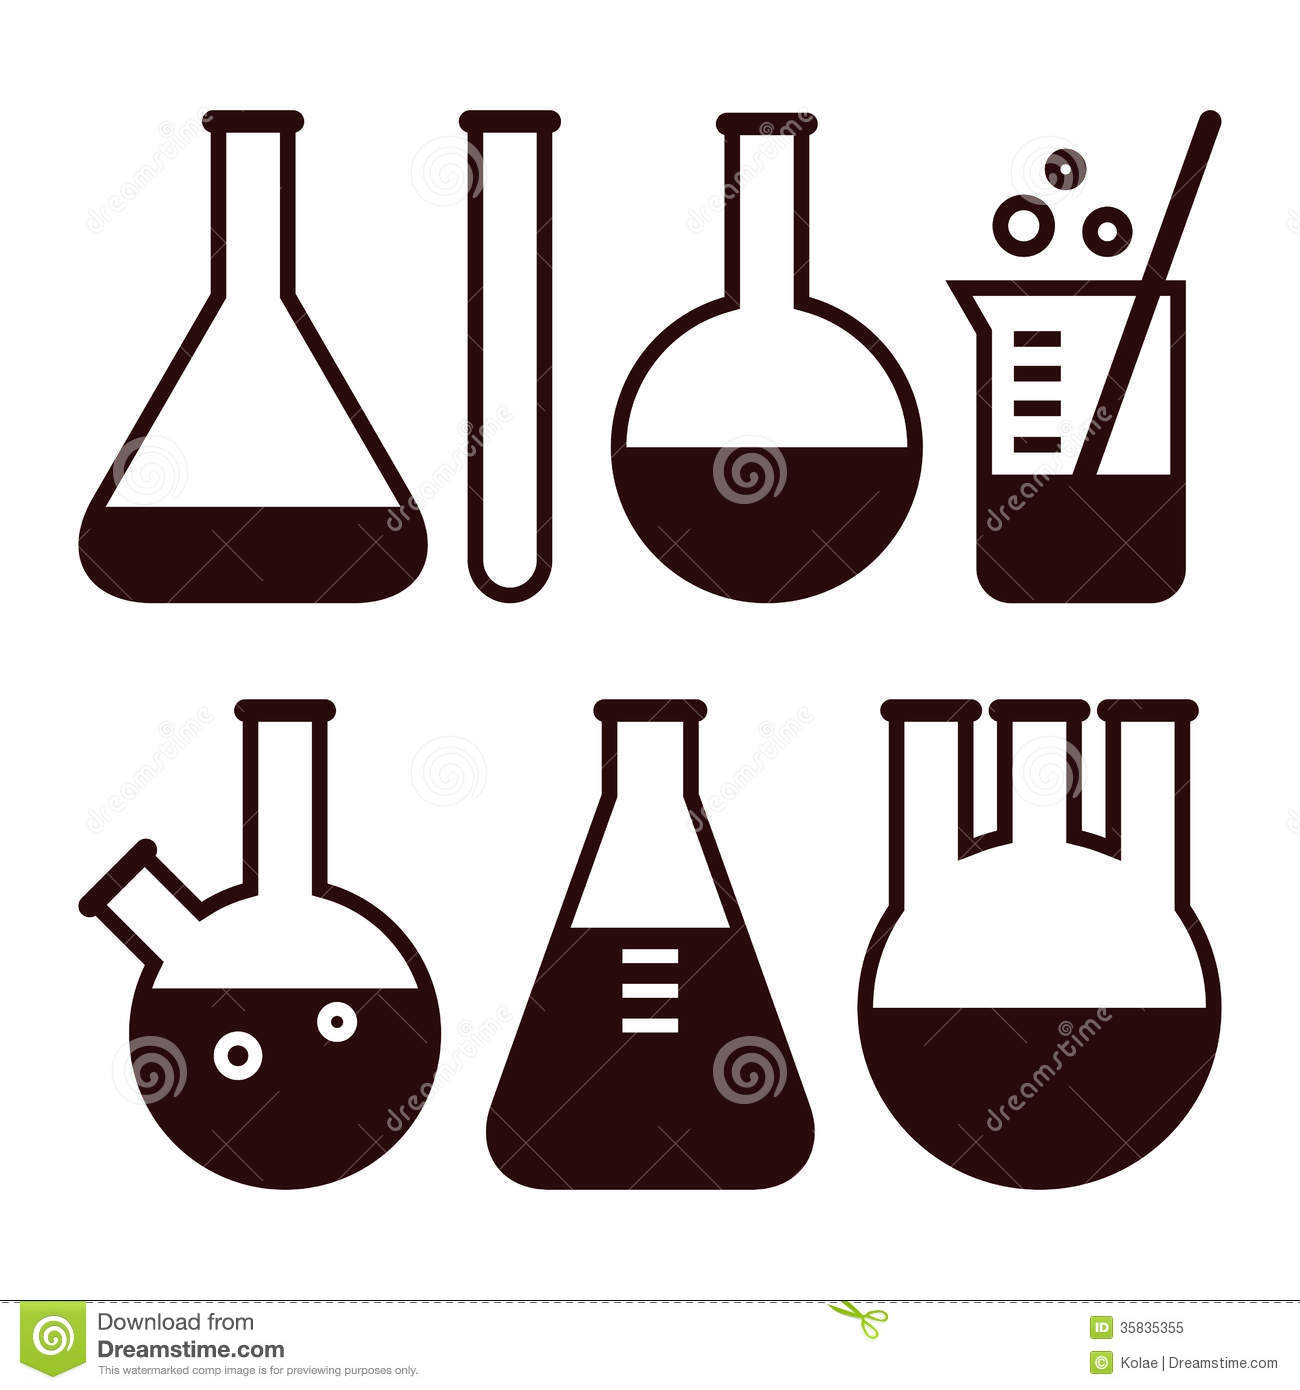 Lab equipment clipart 9 » Clipart Station.